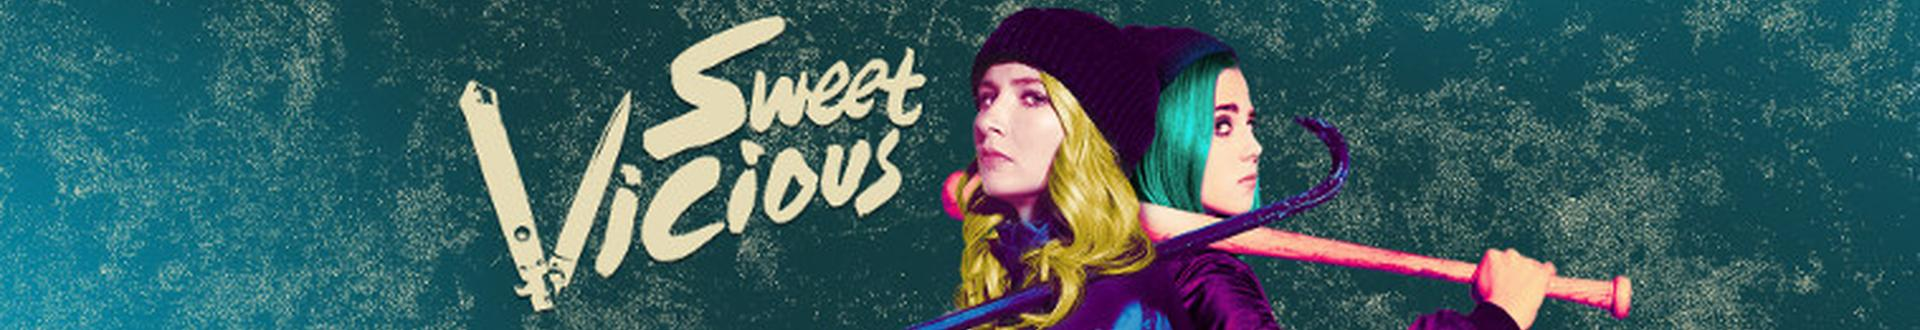 Image illustrative de Sweet/Vicious